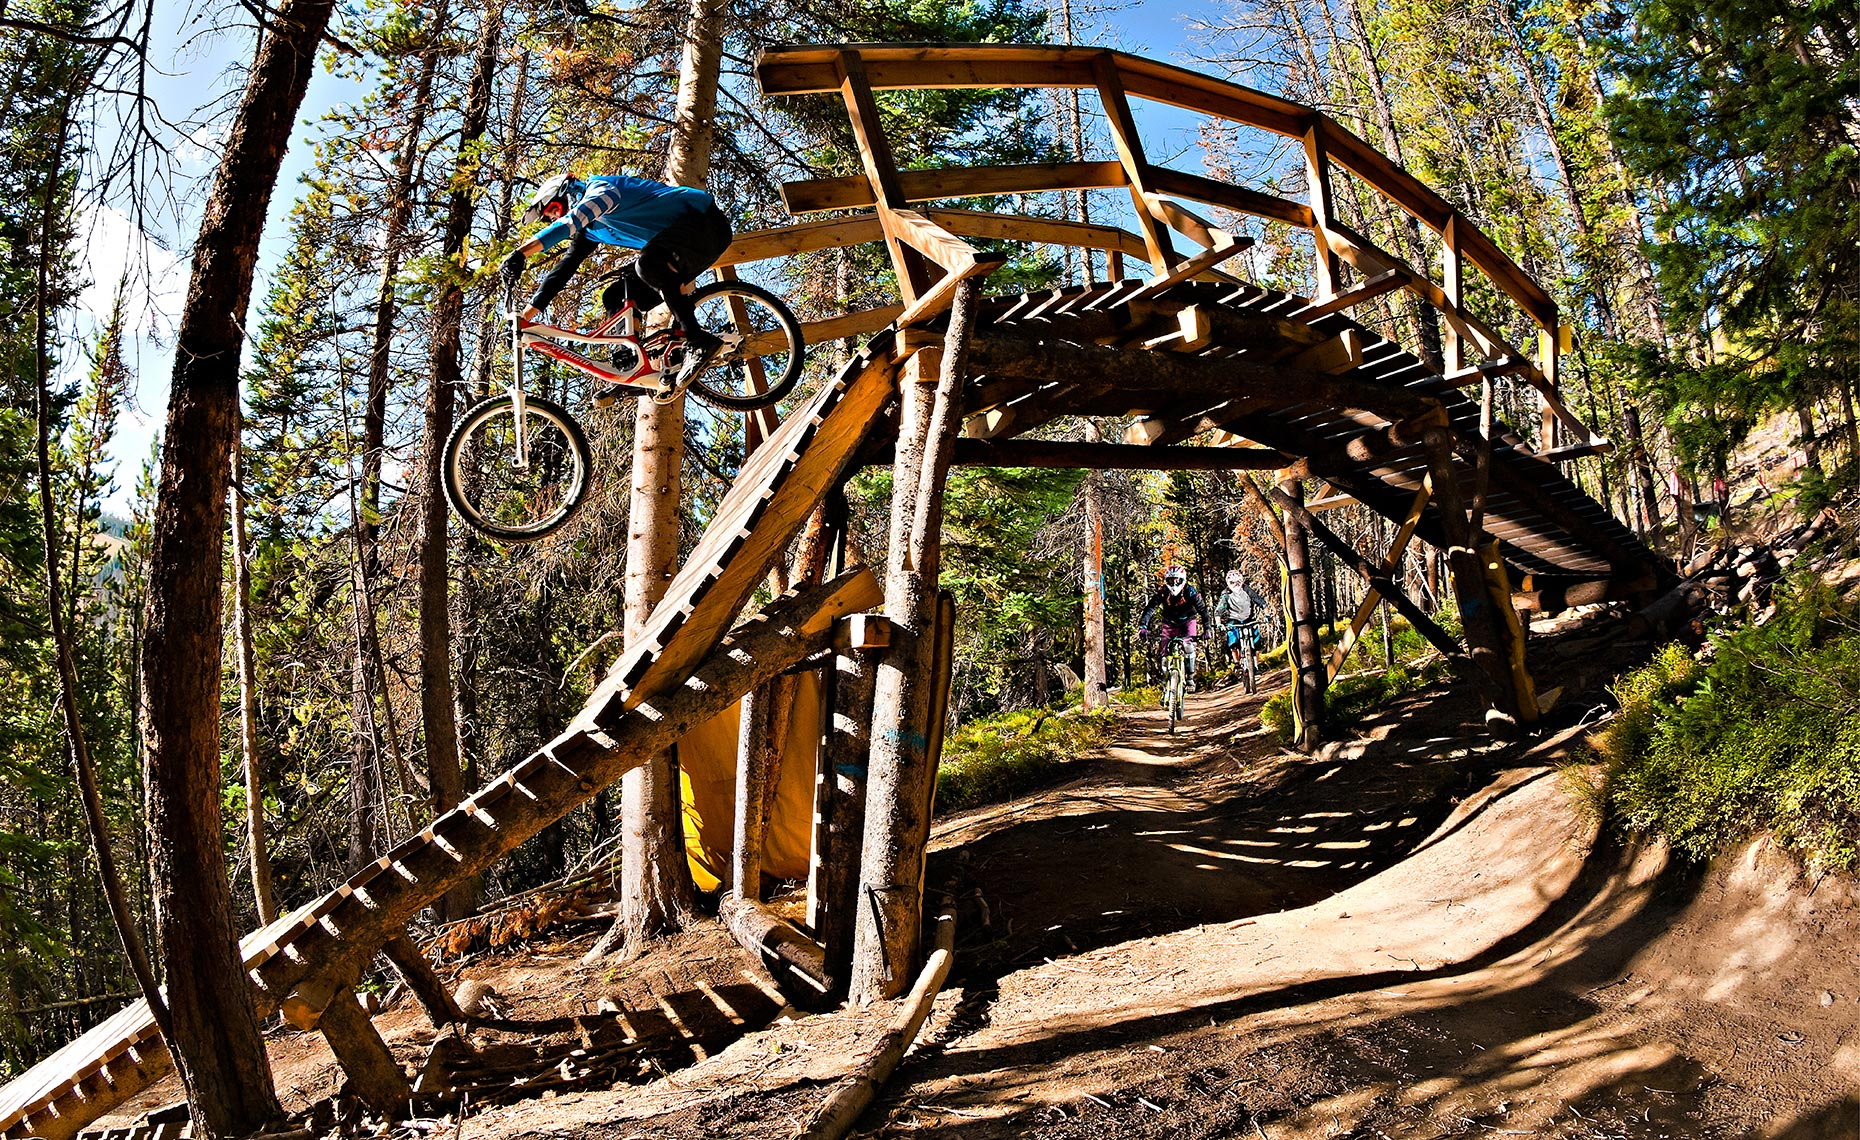 19_Andrew_McKee_Brendan_Newton_Winter_Park_Colorado_Trestle_Bike_Mountain_Biking_Chris_Wellhausen_Photography.JPG